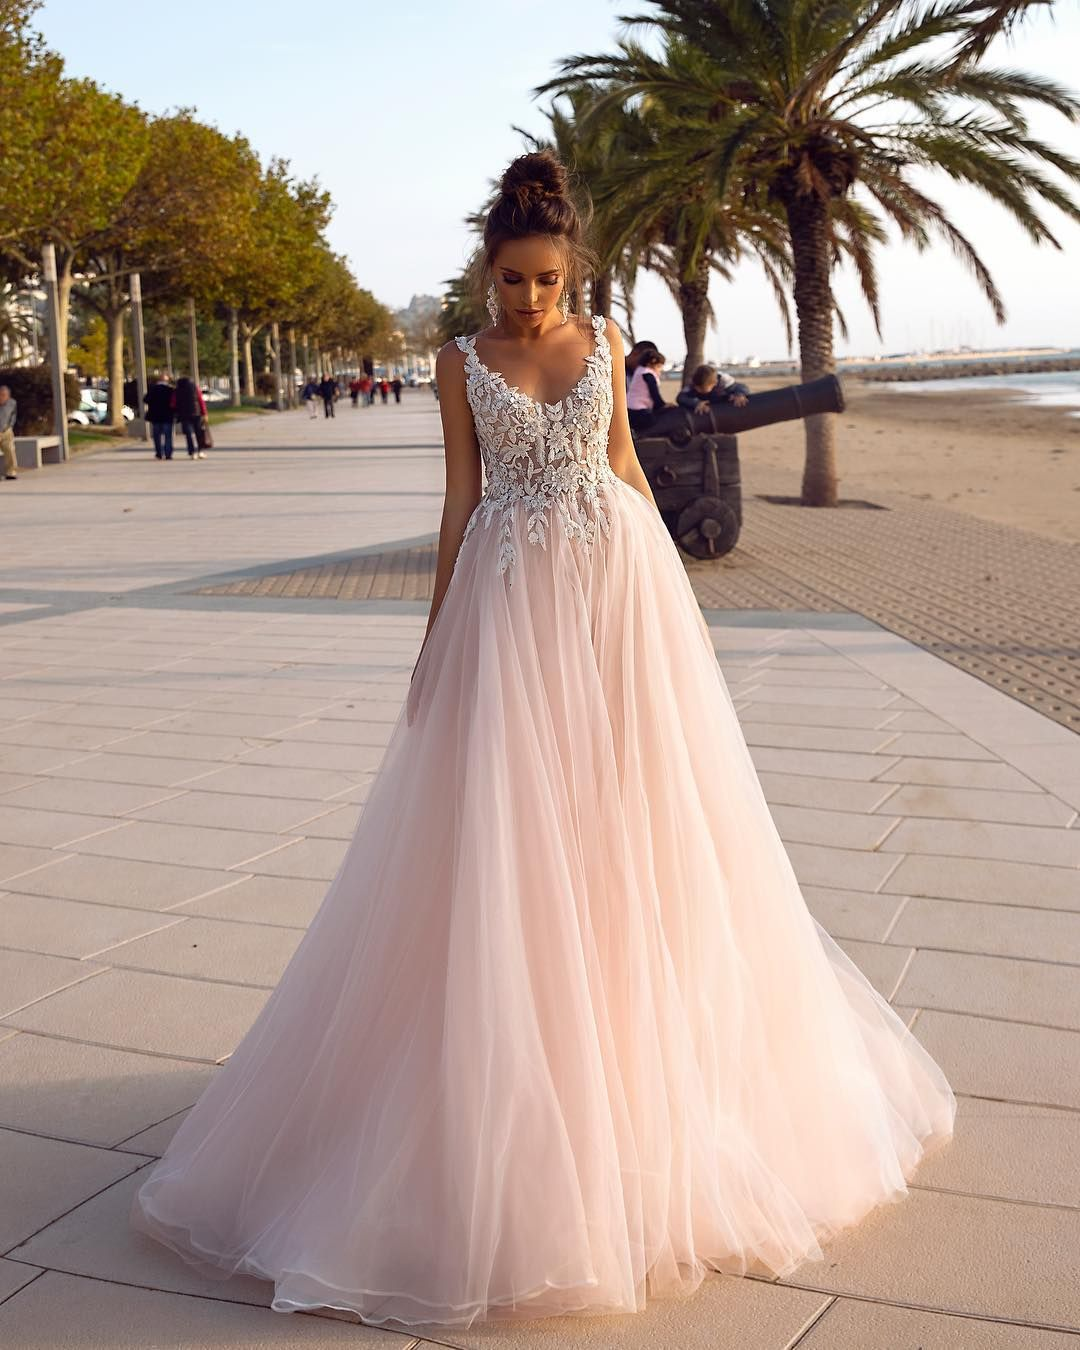 bd059630bb0 Daymor Couture Dresses Sale - Gomes Weine AG